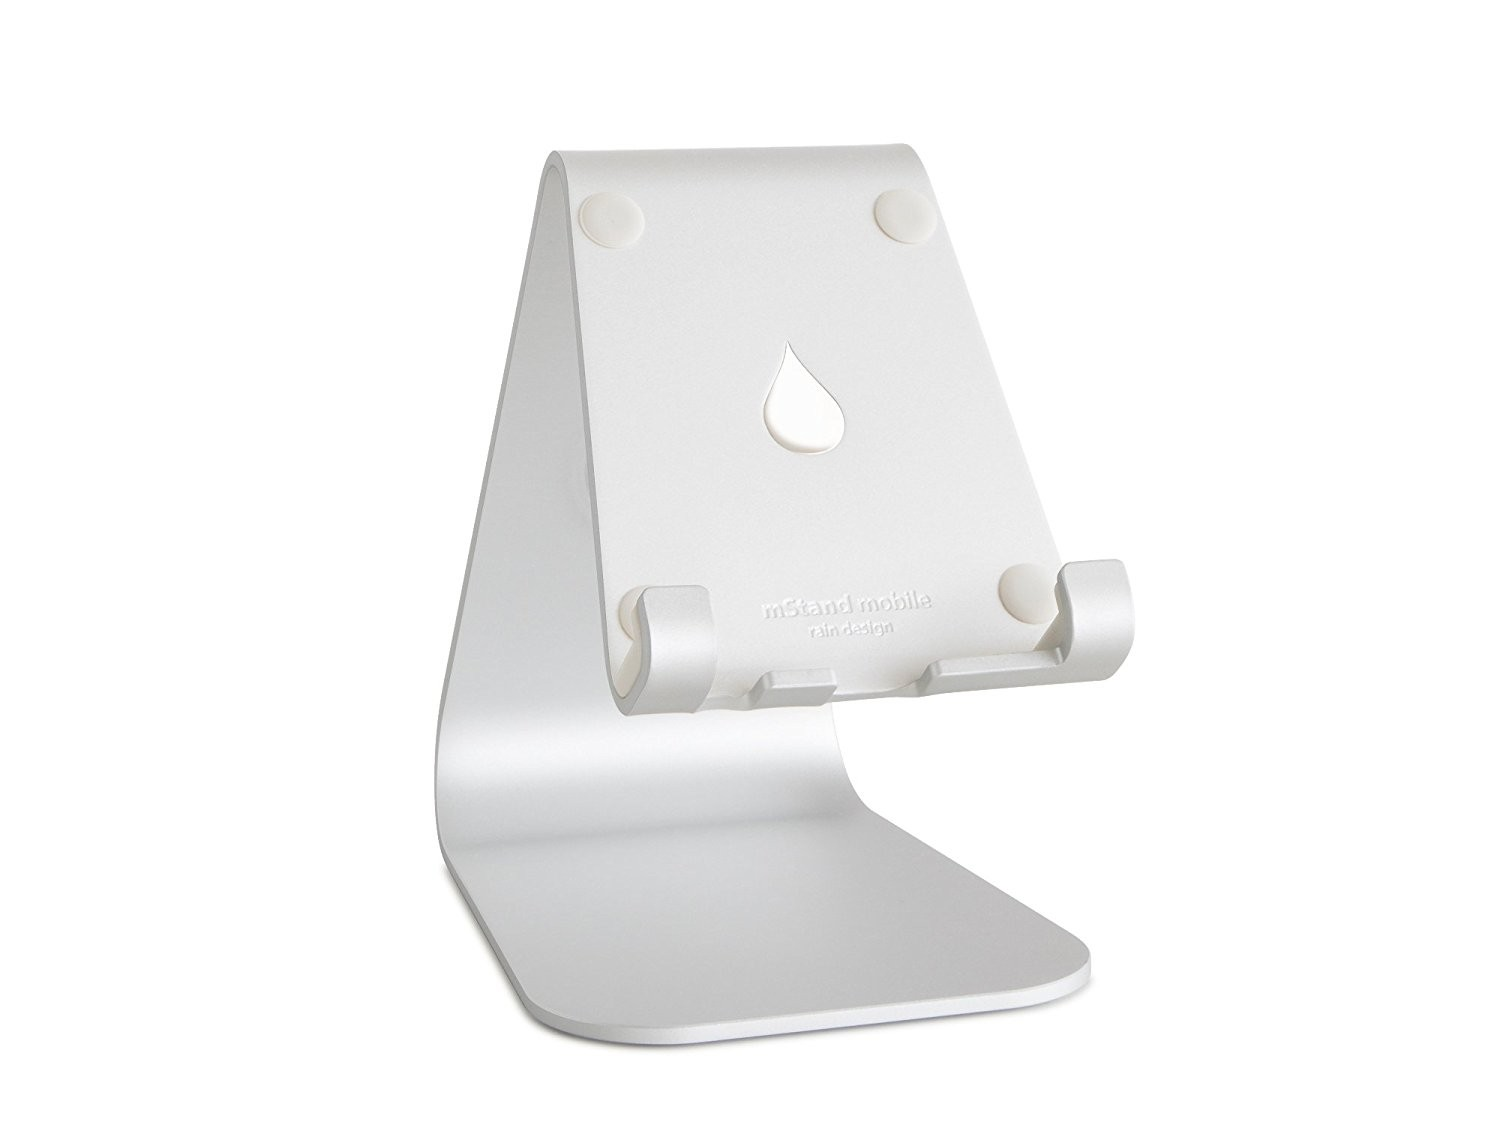 Rain Design mStand Mobile for iPhone and iPad - Silver, RAIN10059